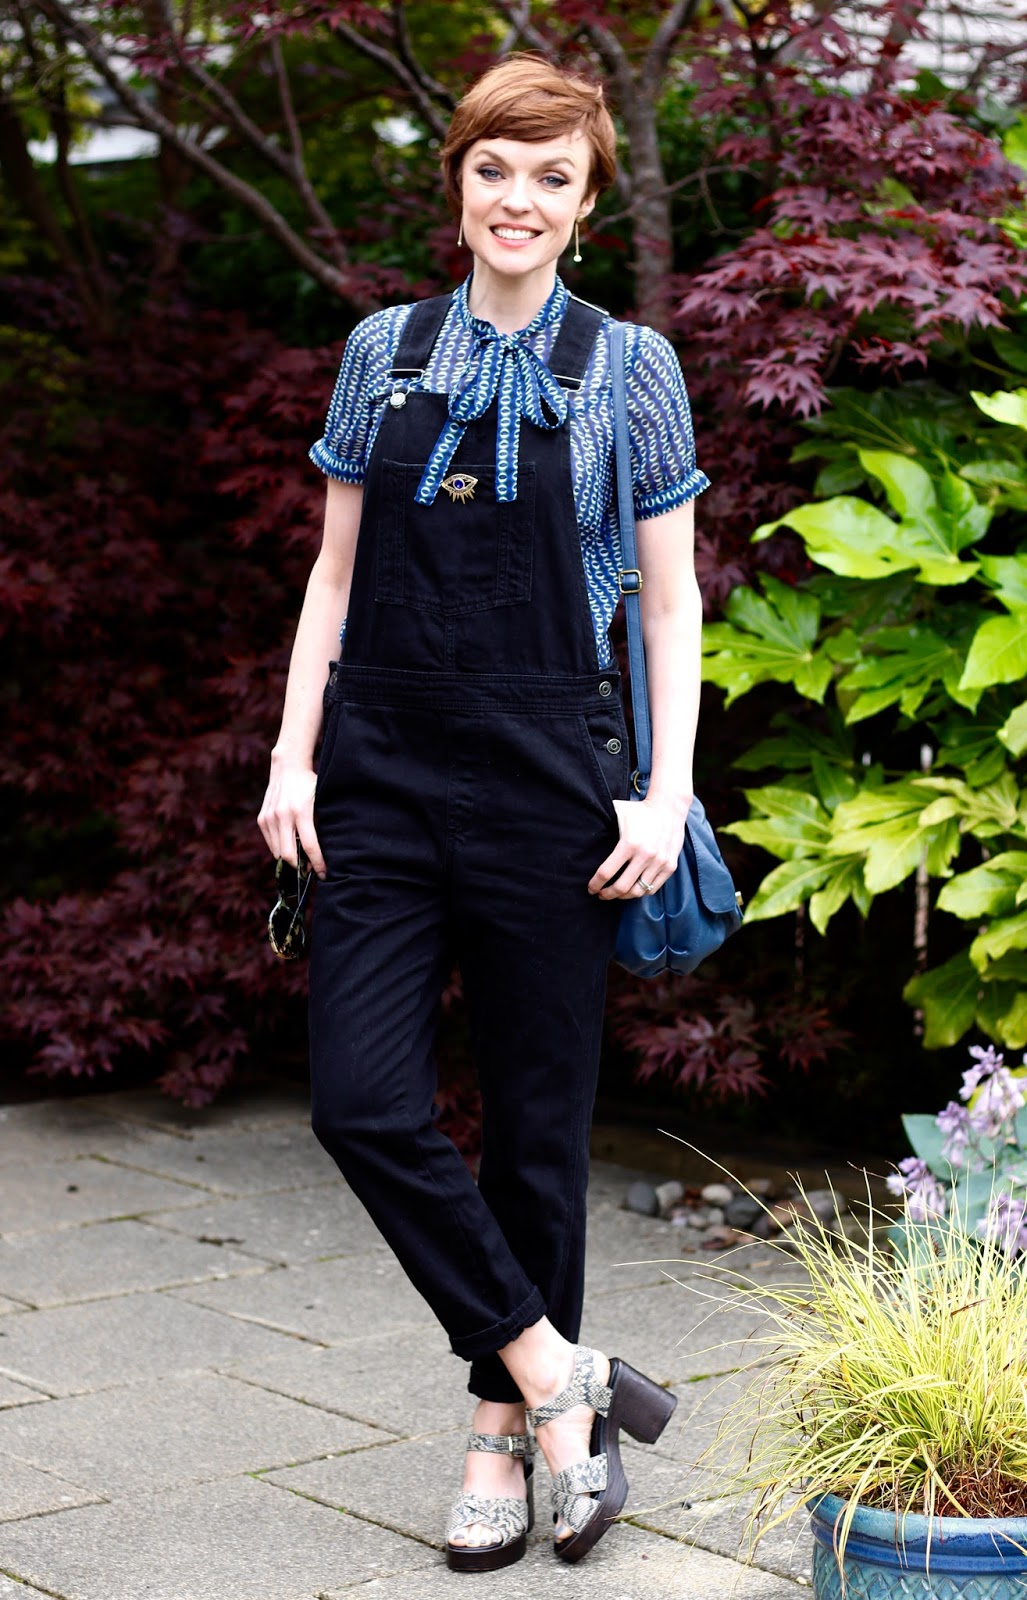 Fake Fabulous | Black denim Topshop dungarees, tie neck blouse and chunky Vagabond heels, over 40.